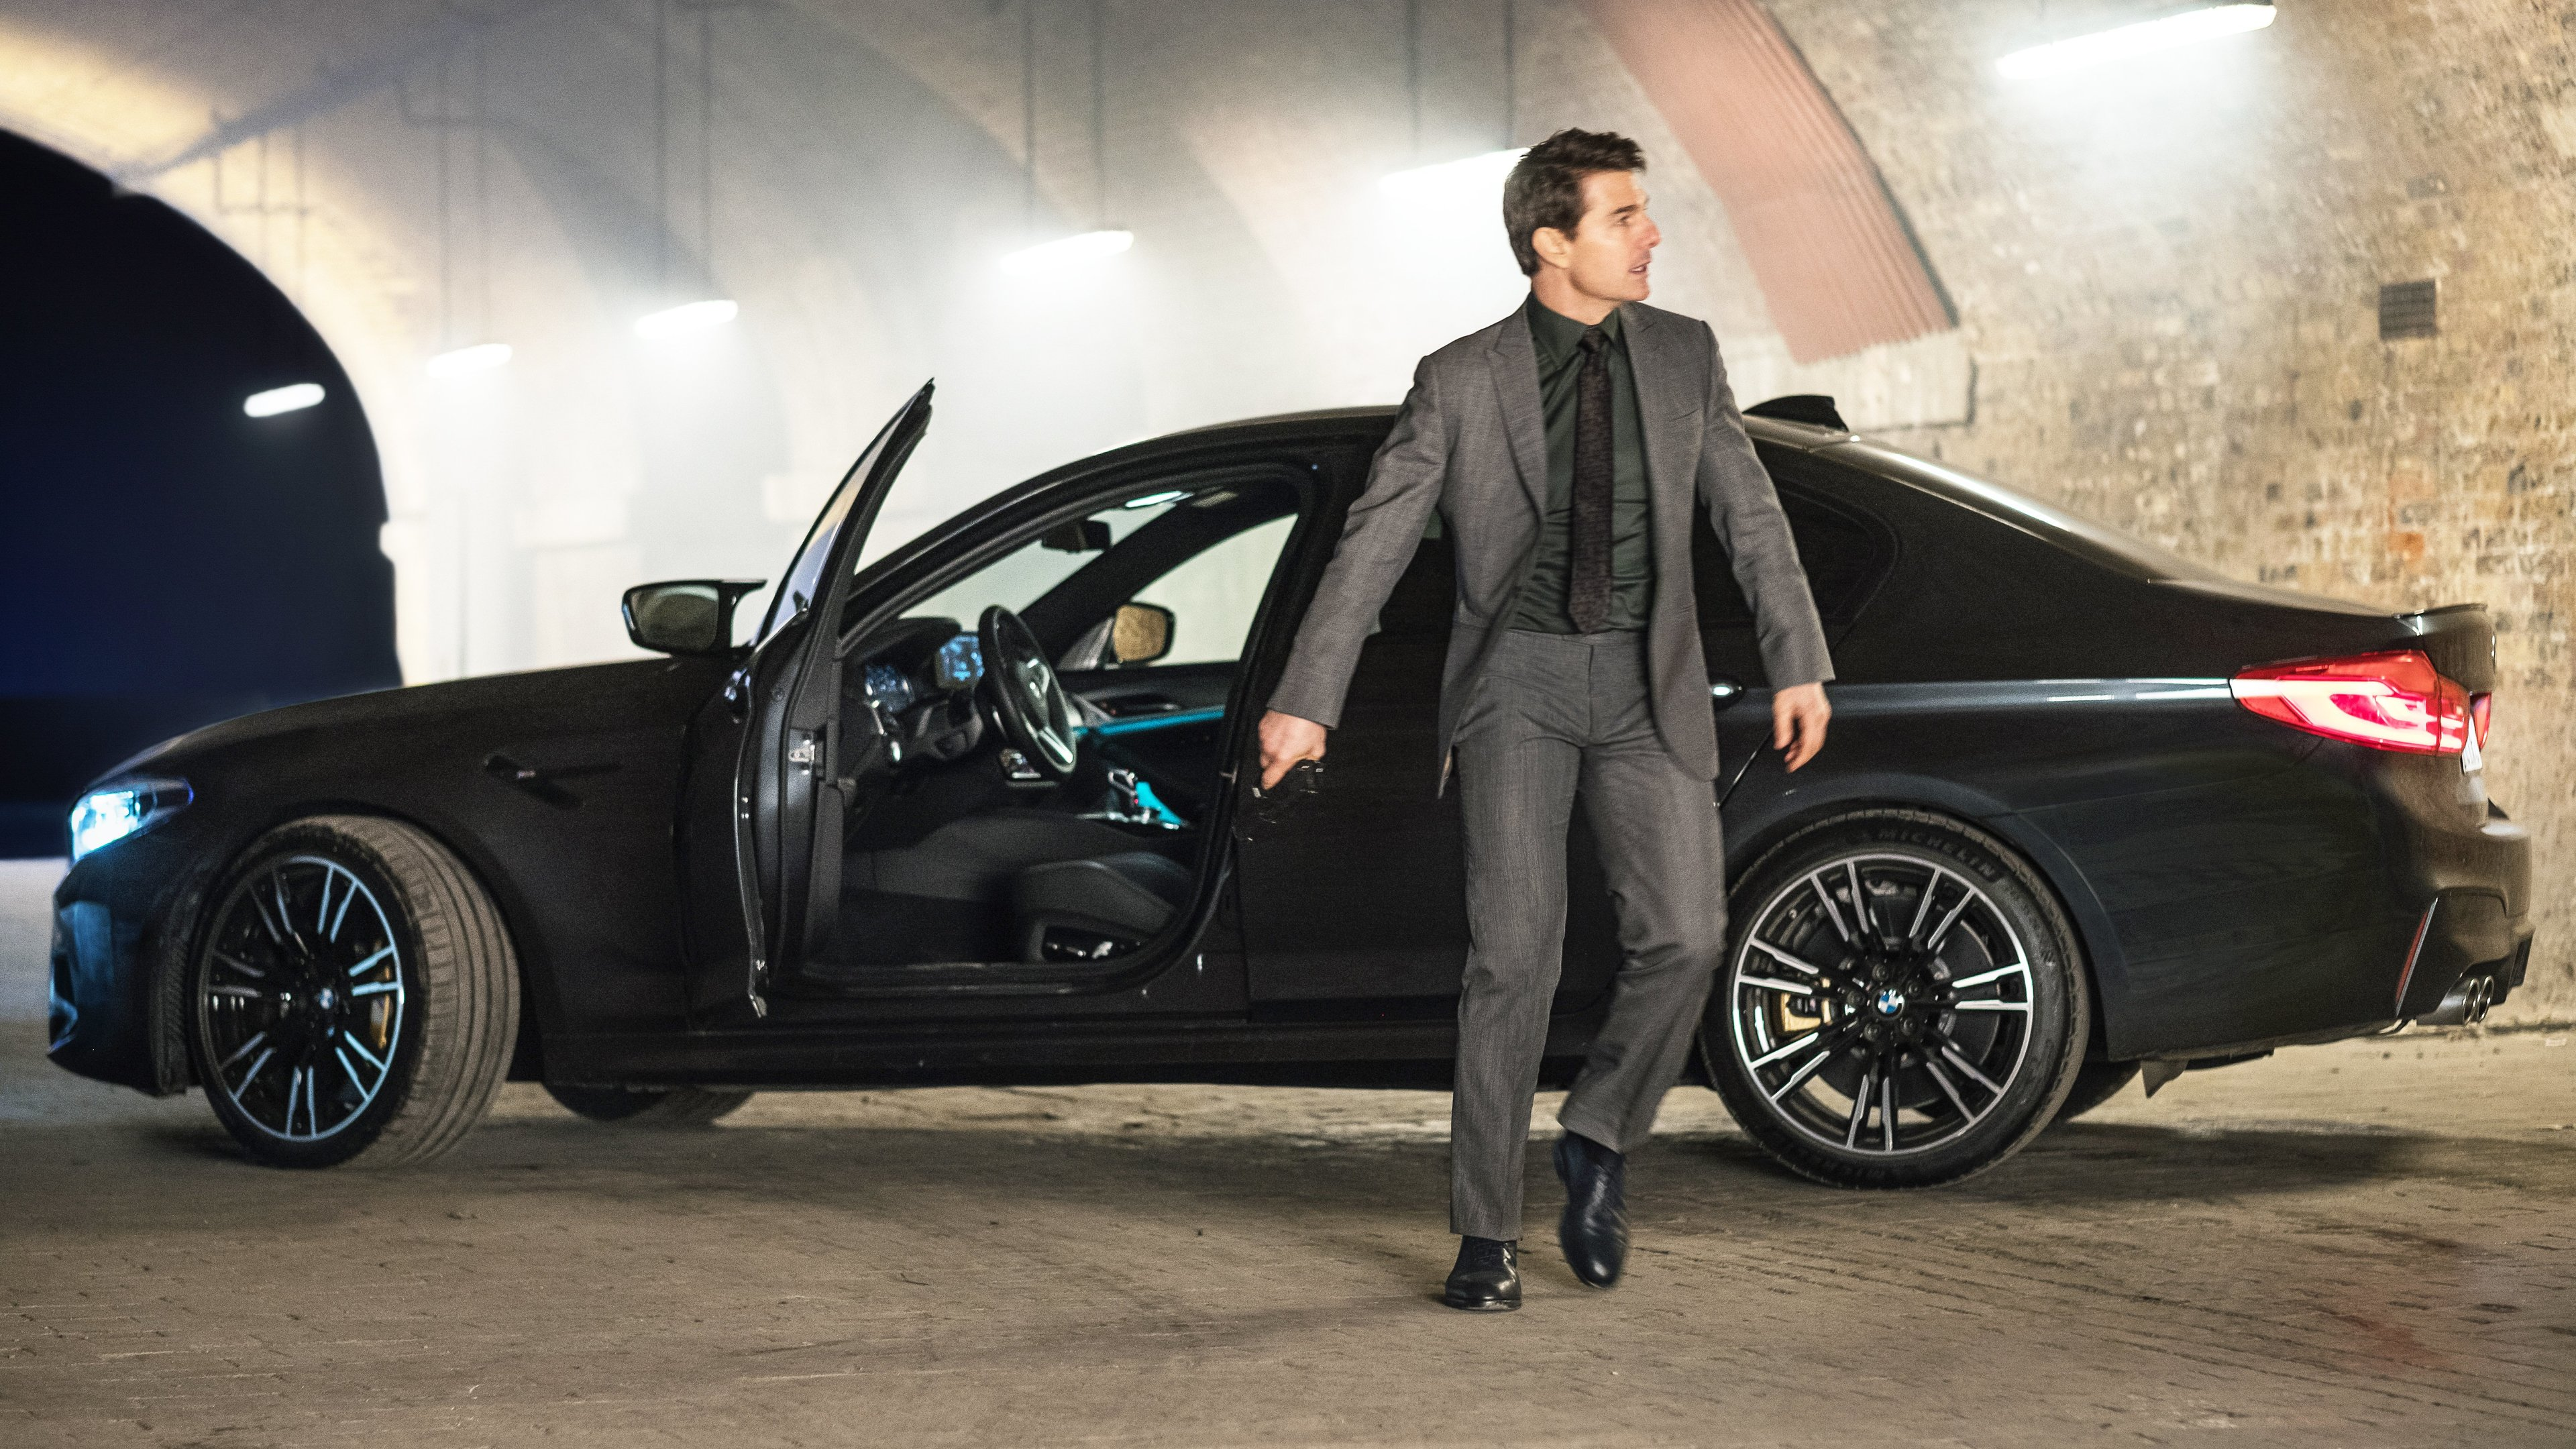 Wallpaper 4k Tom Cruise Mission Impossible Fallout Bmw M5 2018 Movies Wallpapers 4k Wallpapers 5k Wallpapers Bmw M5 Wallpapers Hd Wallpapers Mission Impossible 6 Wallpapers Mission Impossible Fallout Wallpapers Movies Wallpapers Tom Cruise